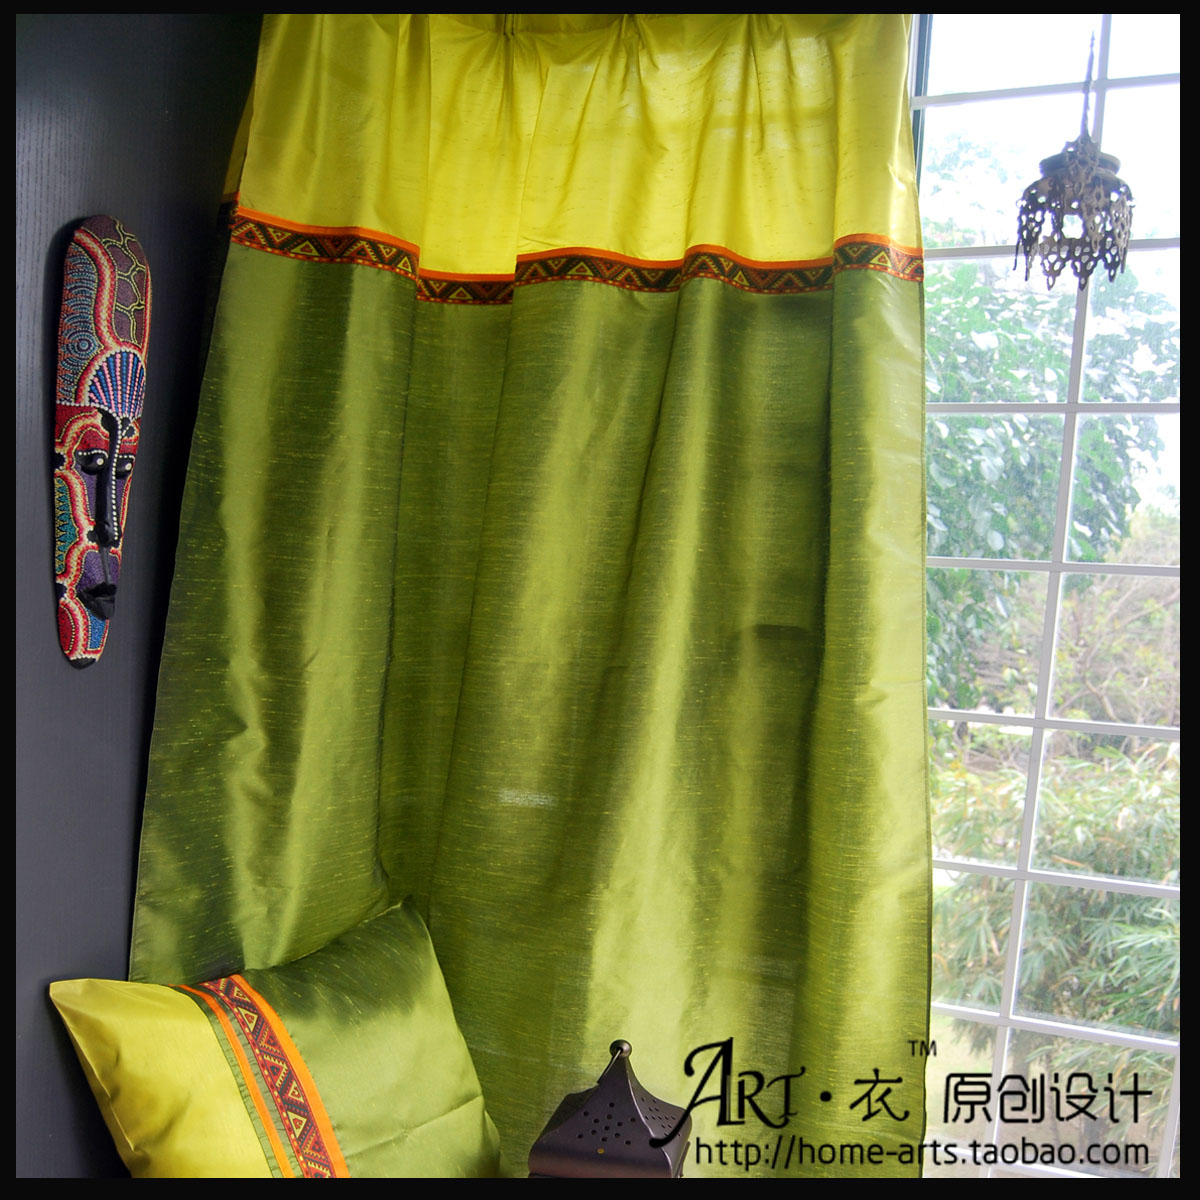 Piaochuang curtain floor dodechedron finished products customize curtains